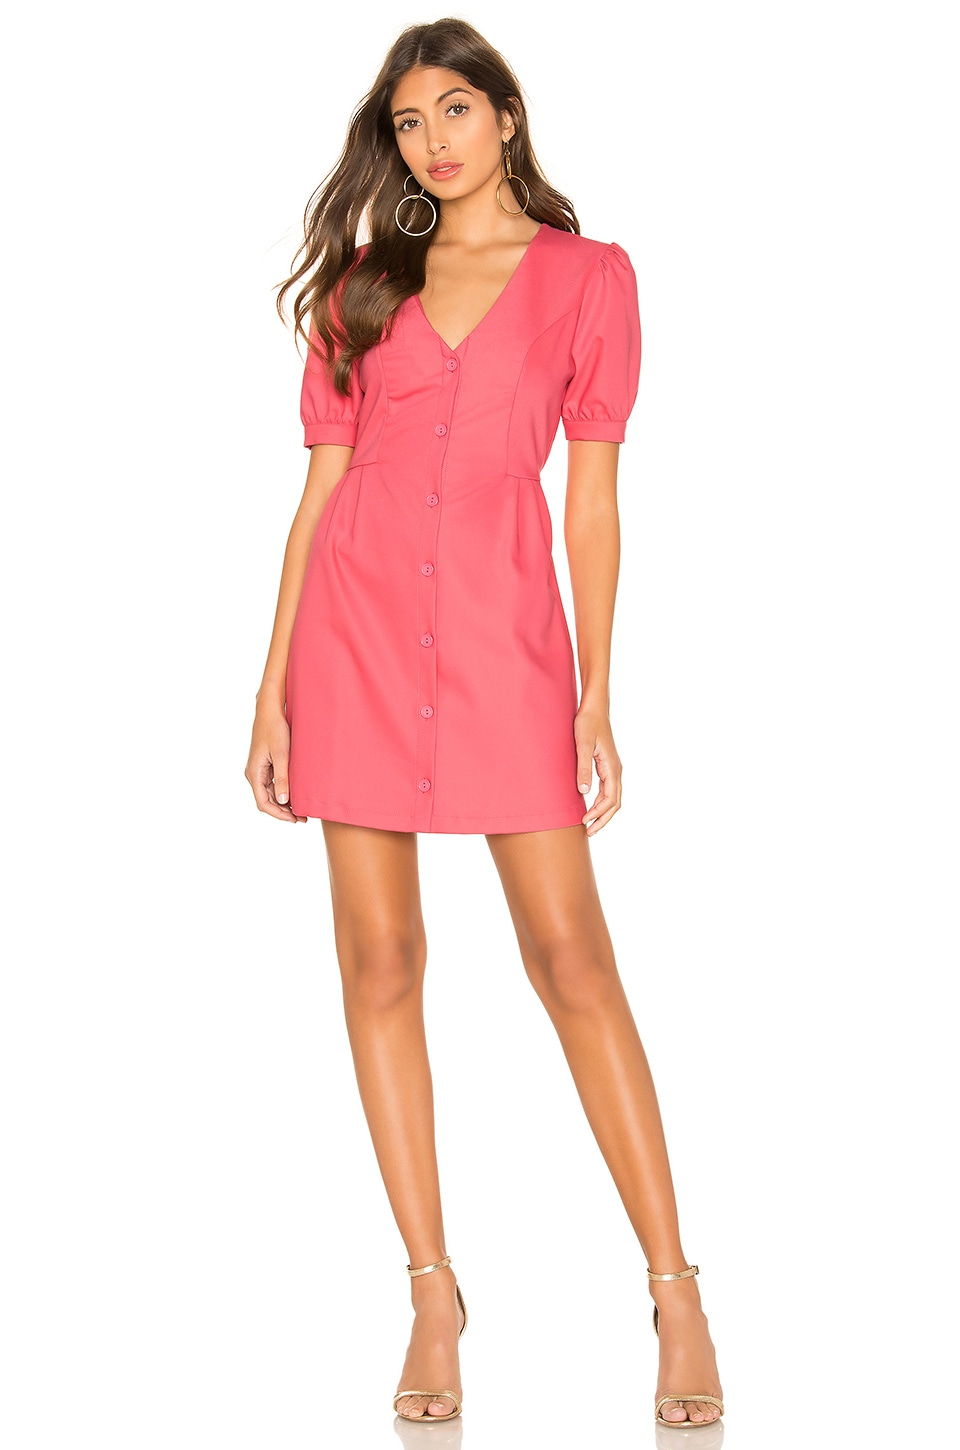 L'Academie The Violet Mini Dress in Calypso Coral